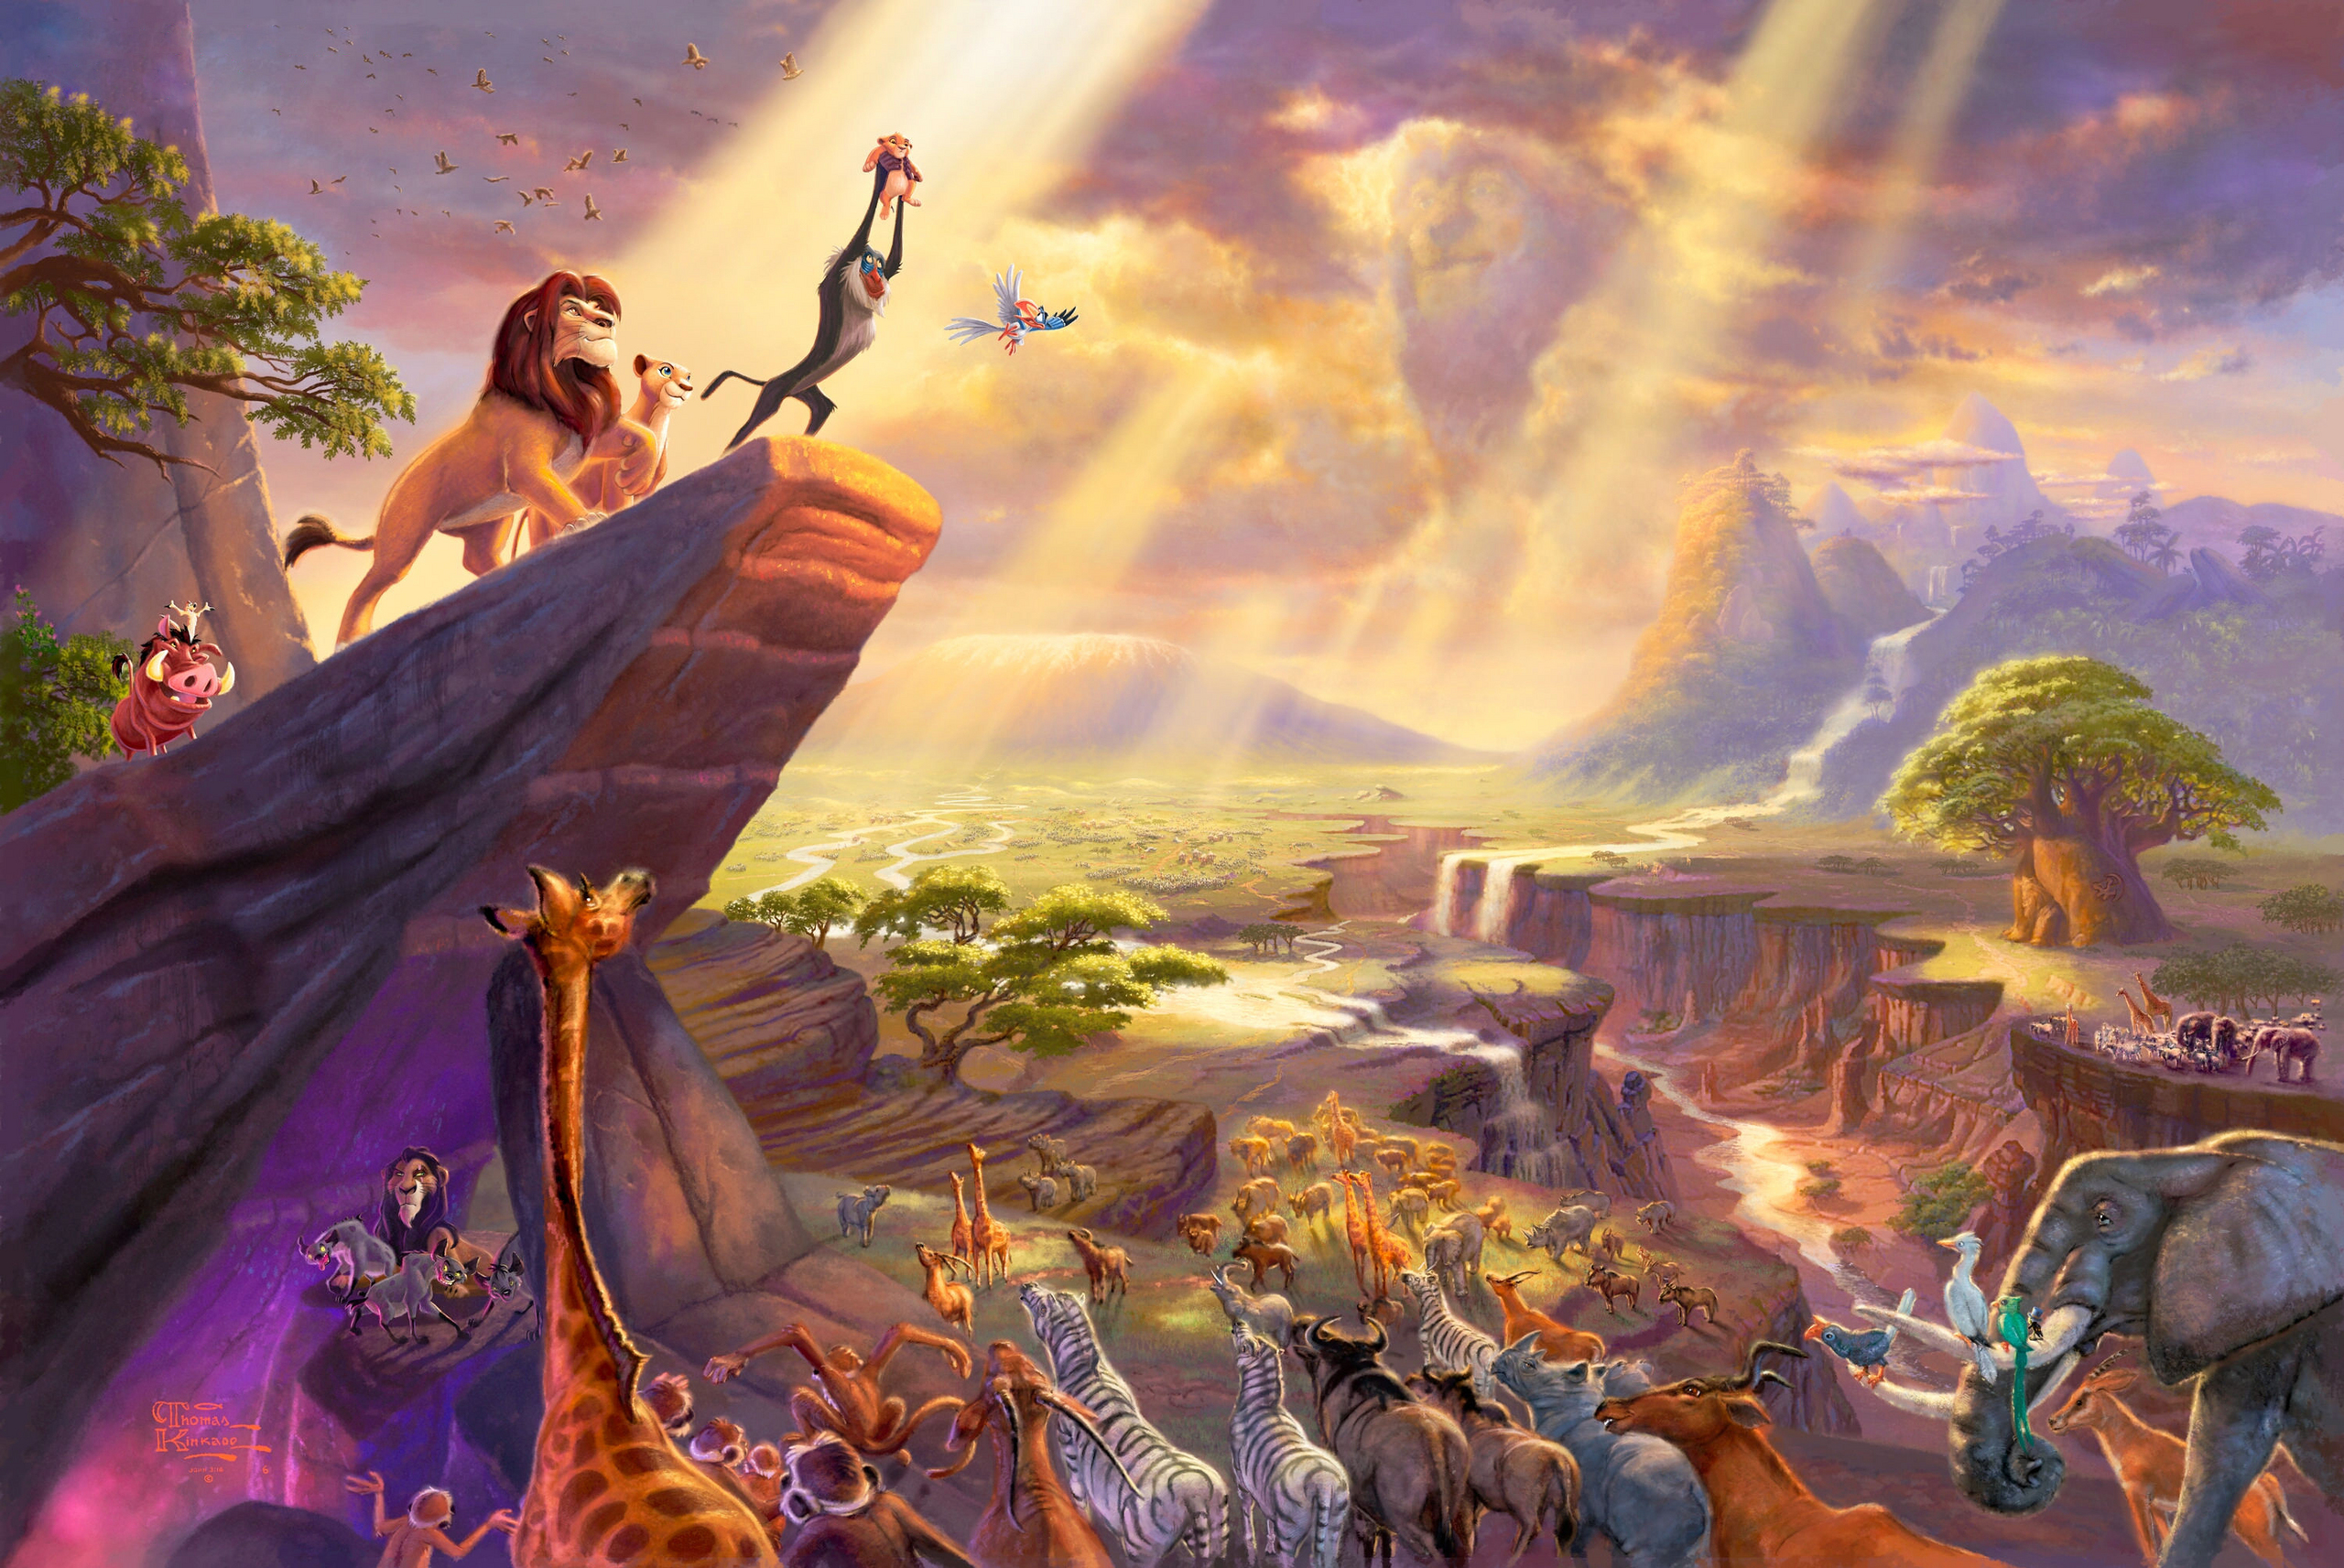 Walt-Disney-Wallpapers-The-Lion-King-walt-disney-characters-28821899 ...